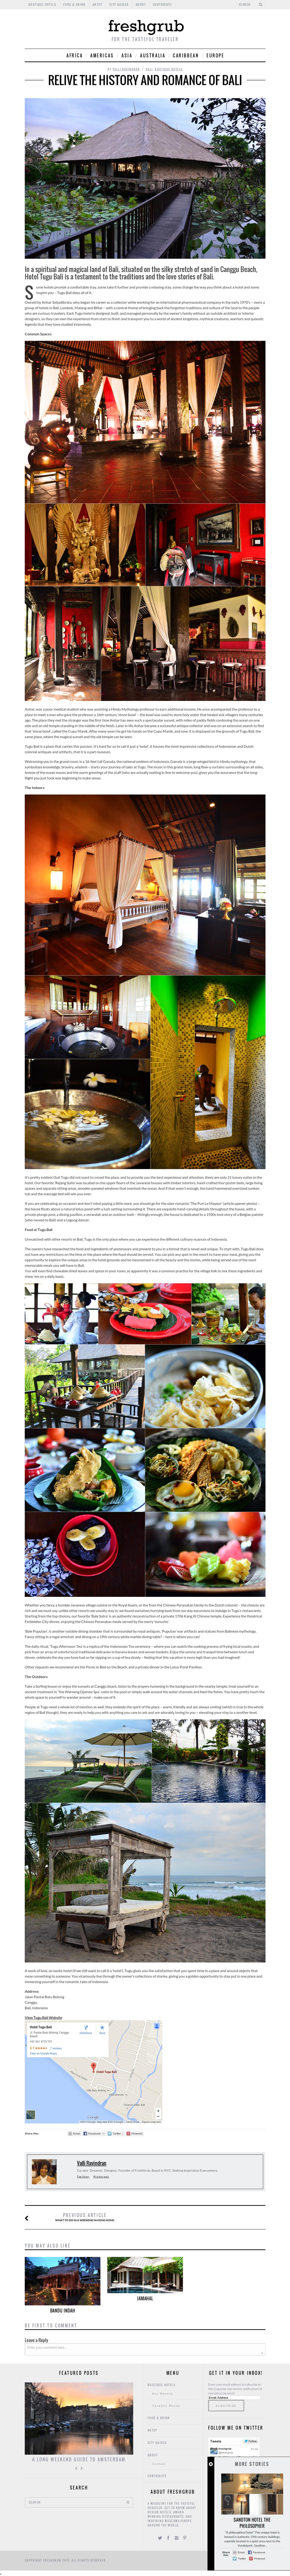 Relive the History and Romance of Bali - Freshgrub